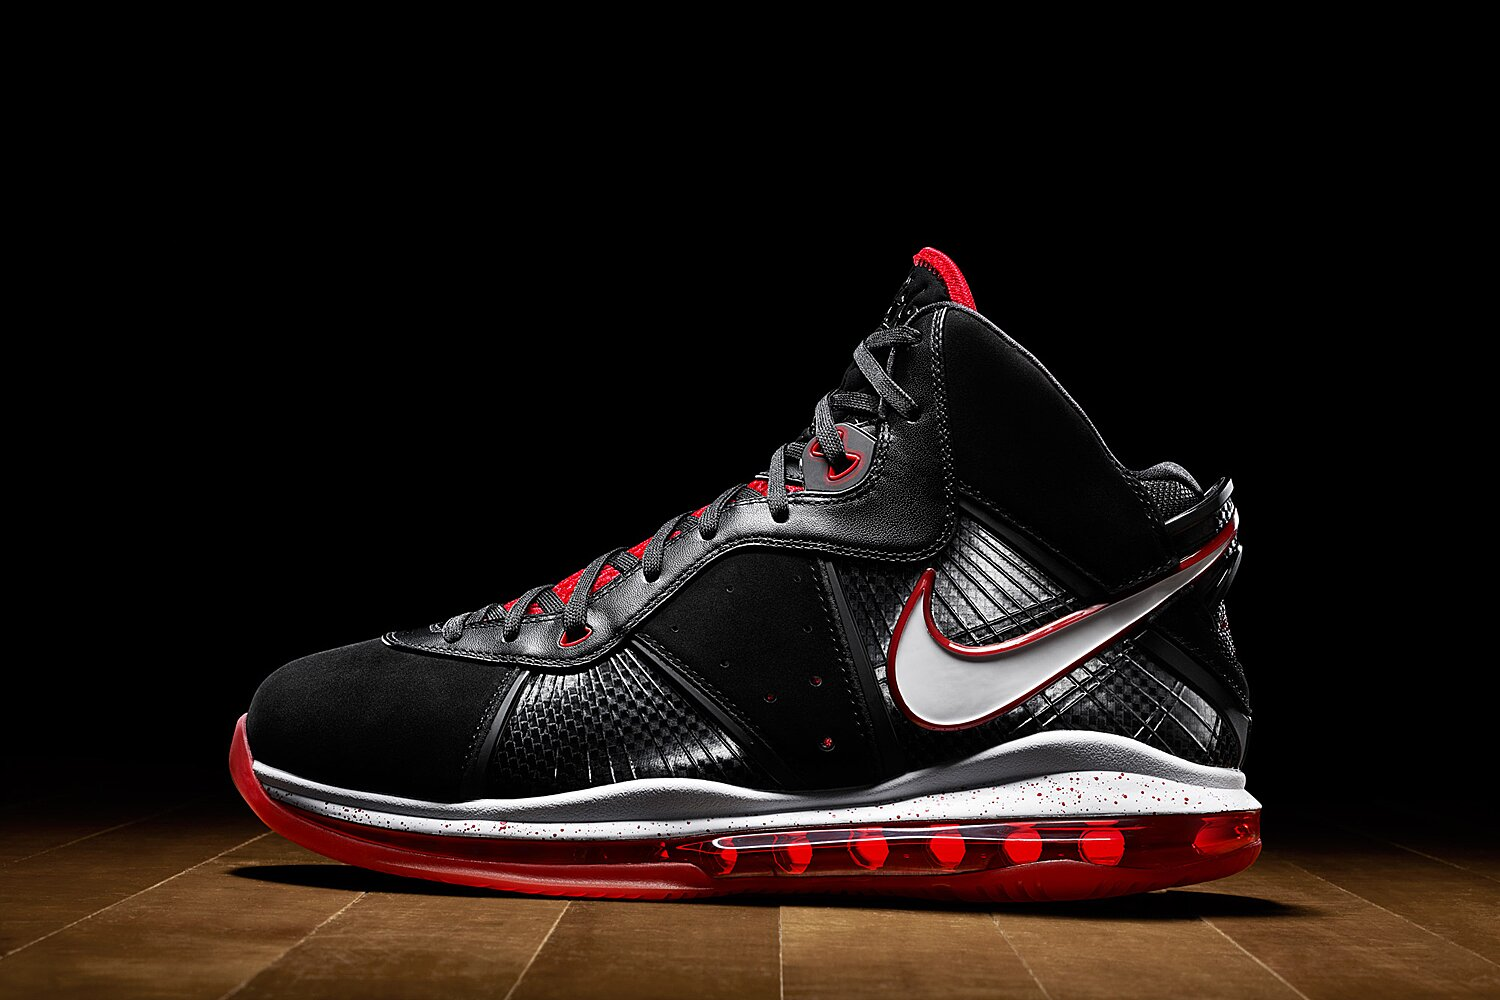 buy online 6af02 0ccd9 LeBron James Signature Sneakers  Ranking the Best of the King   SI.com